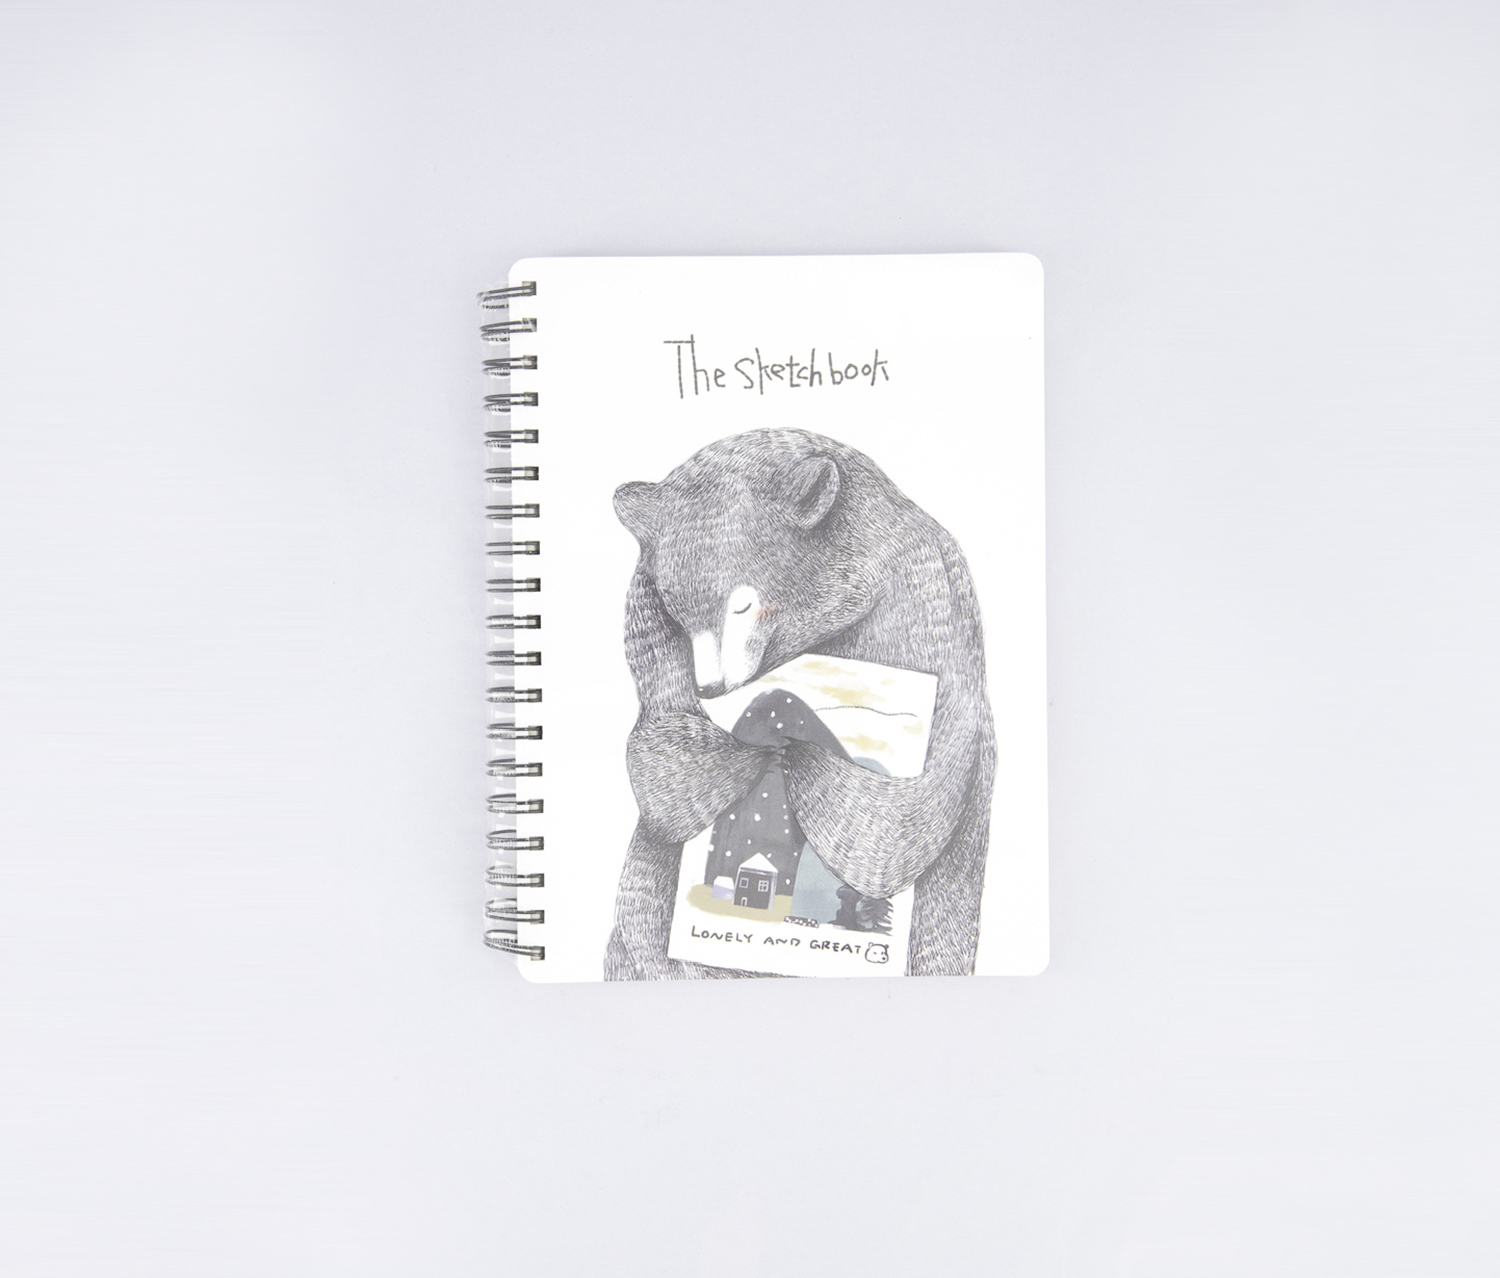 B5 Sketch Book (A Lonely Bear), White